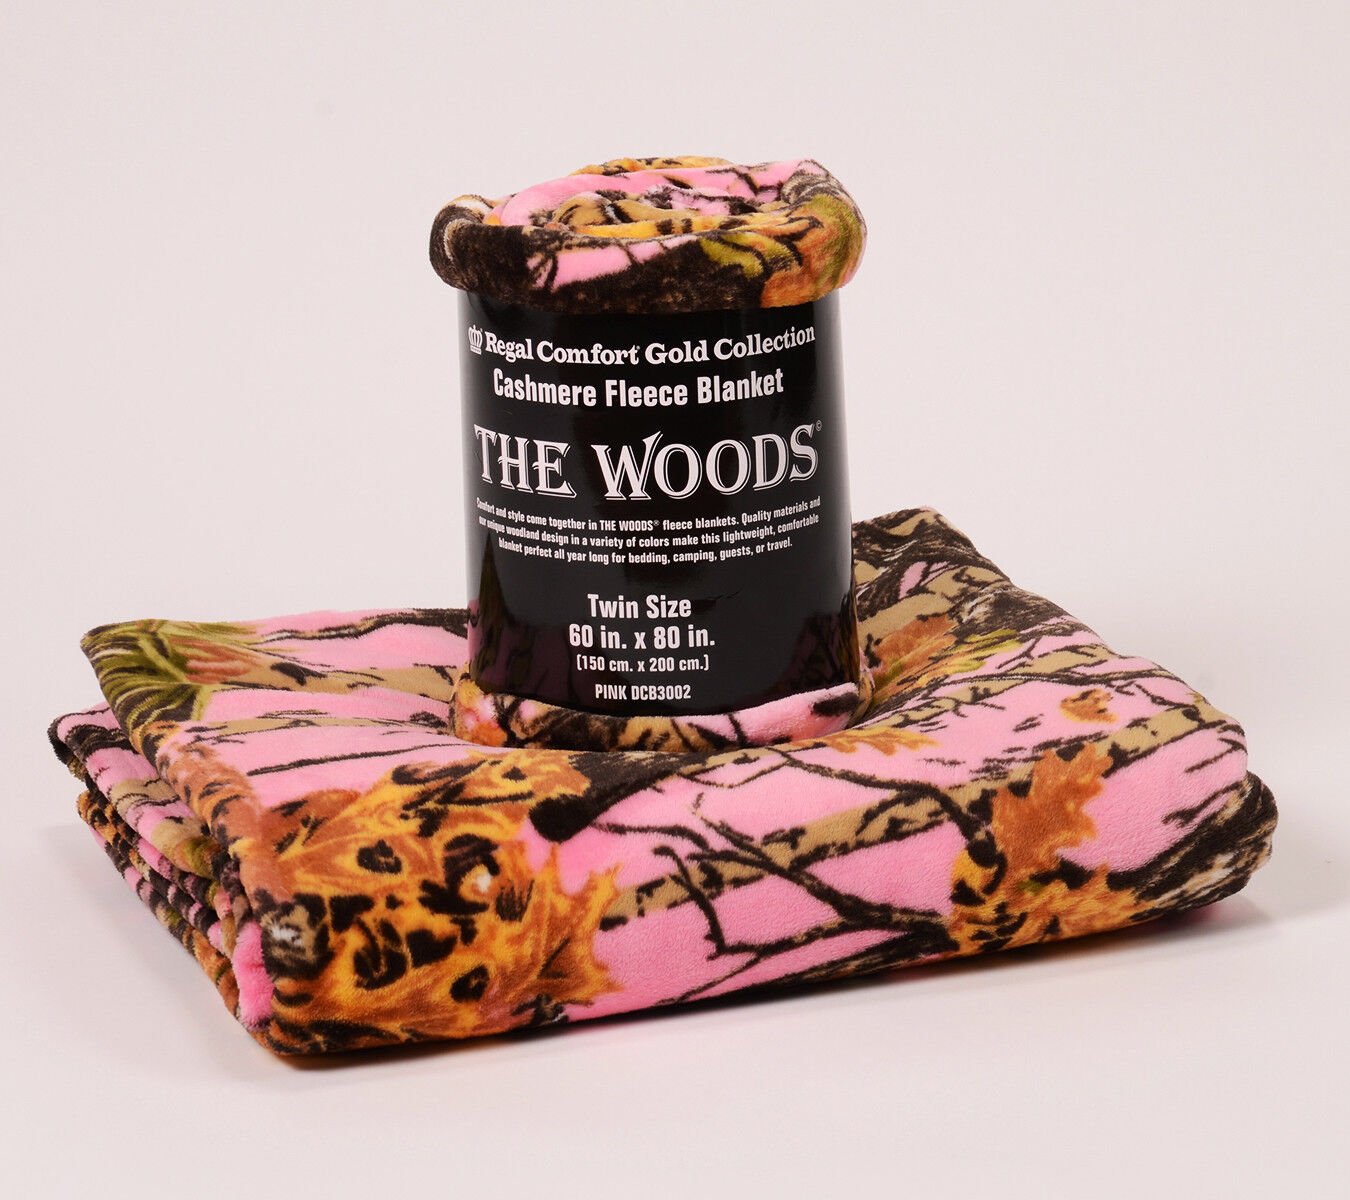 The Woods Collection Cashmere Fleece Blanket by Regal Comfort Twin